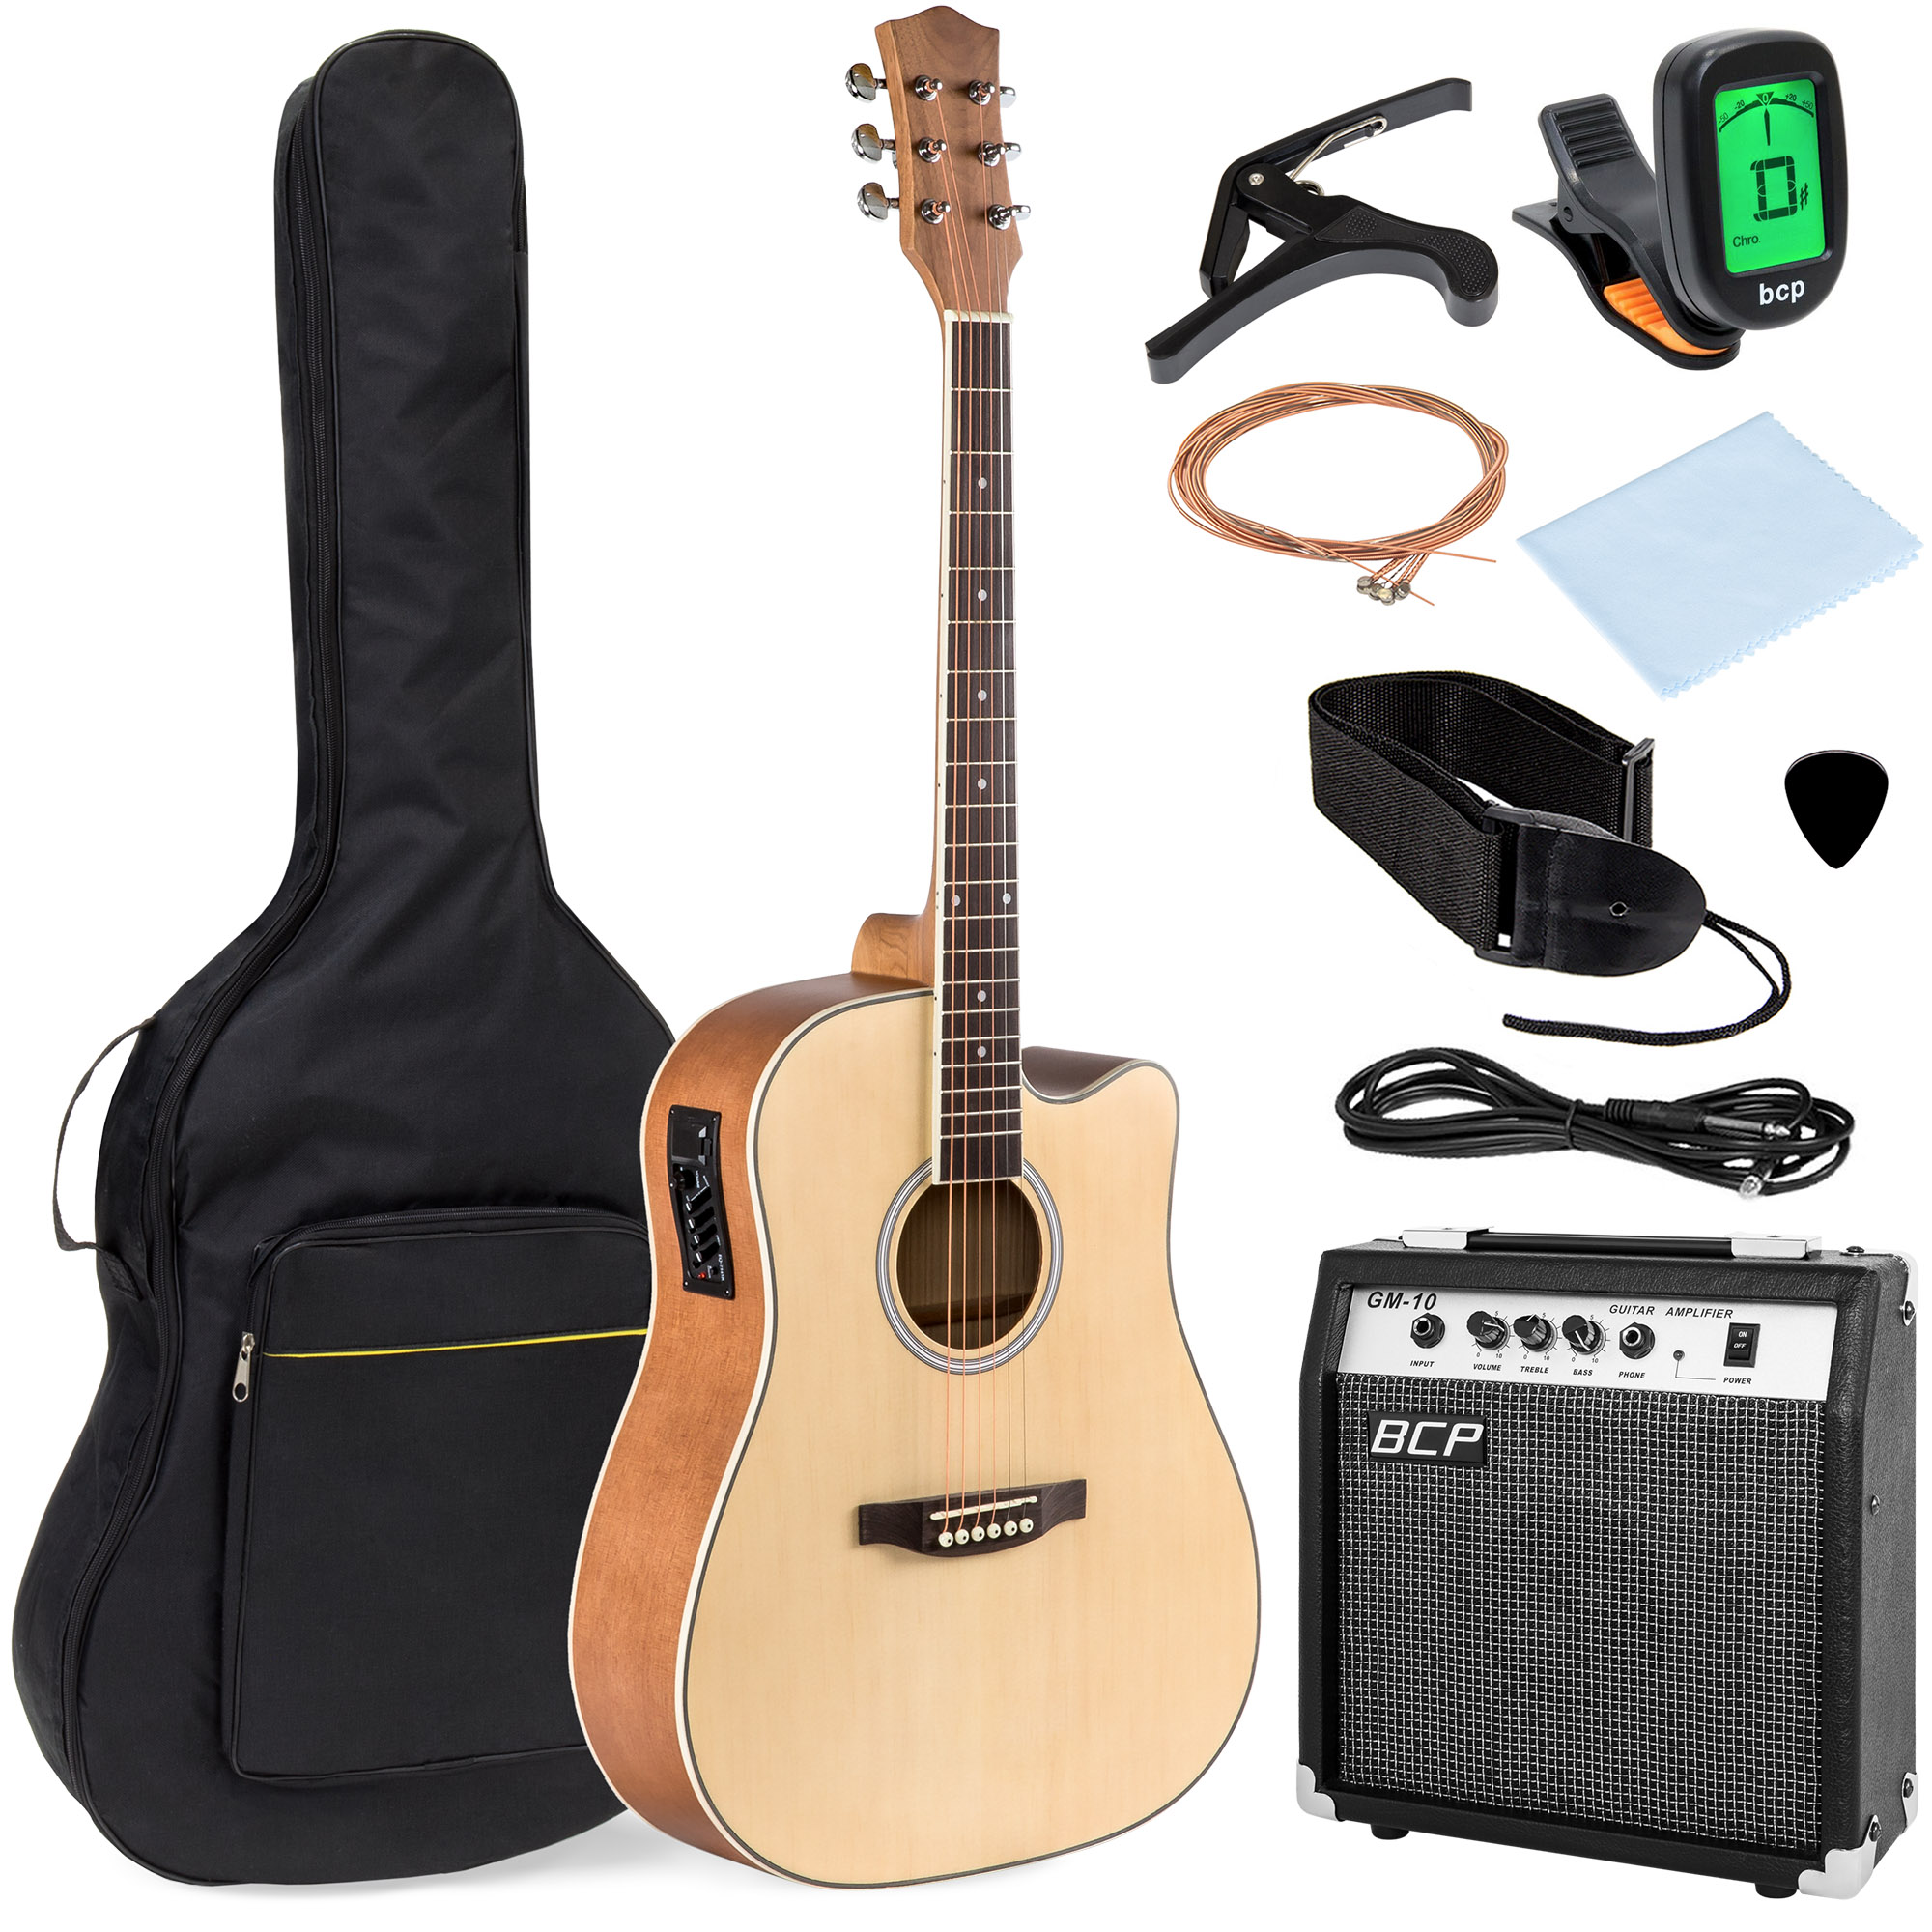 Best Choice Products 41in Full Size Acoustic Electric Cutaway Guitar Set w/ 10-Watt Amp, Capo, E-Tuner, Case – Natural